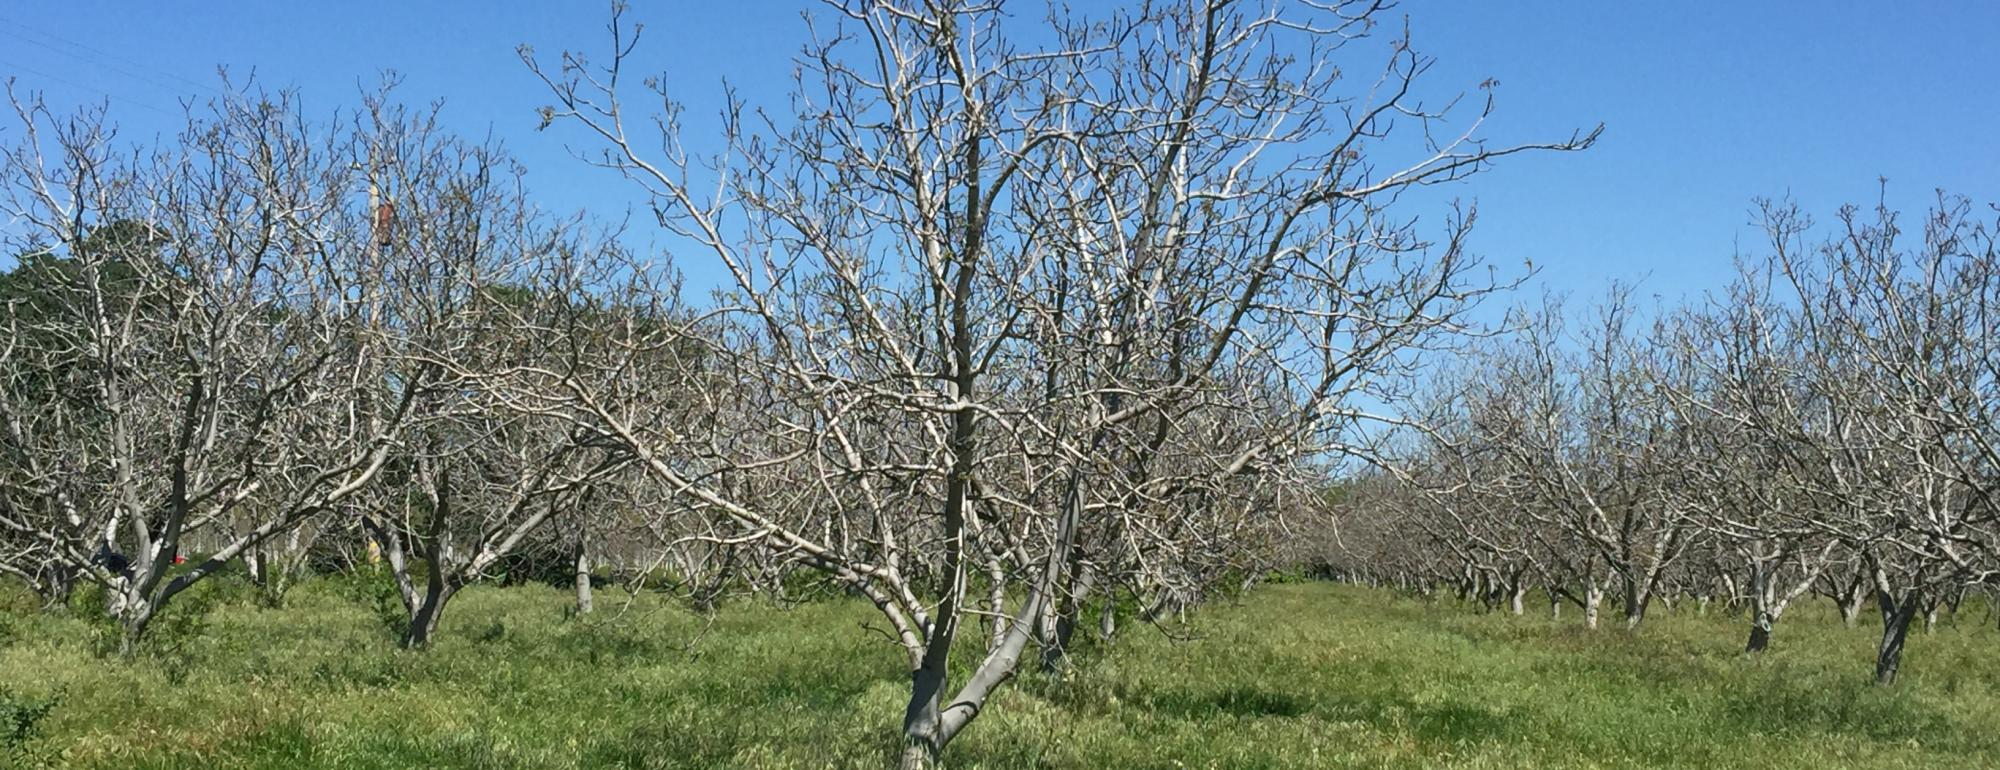 orchard of walnut trees without leaves in winter